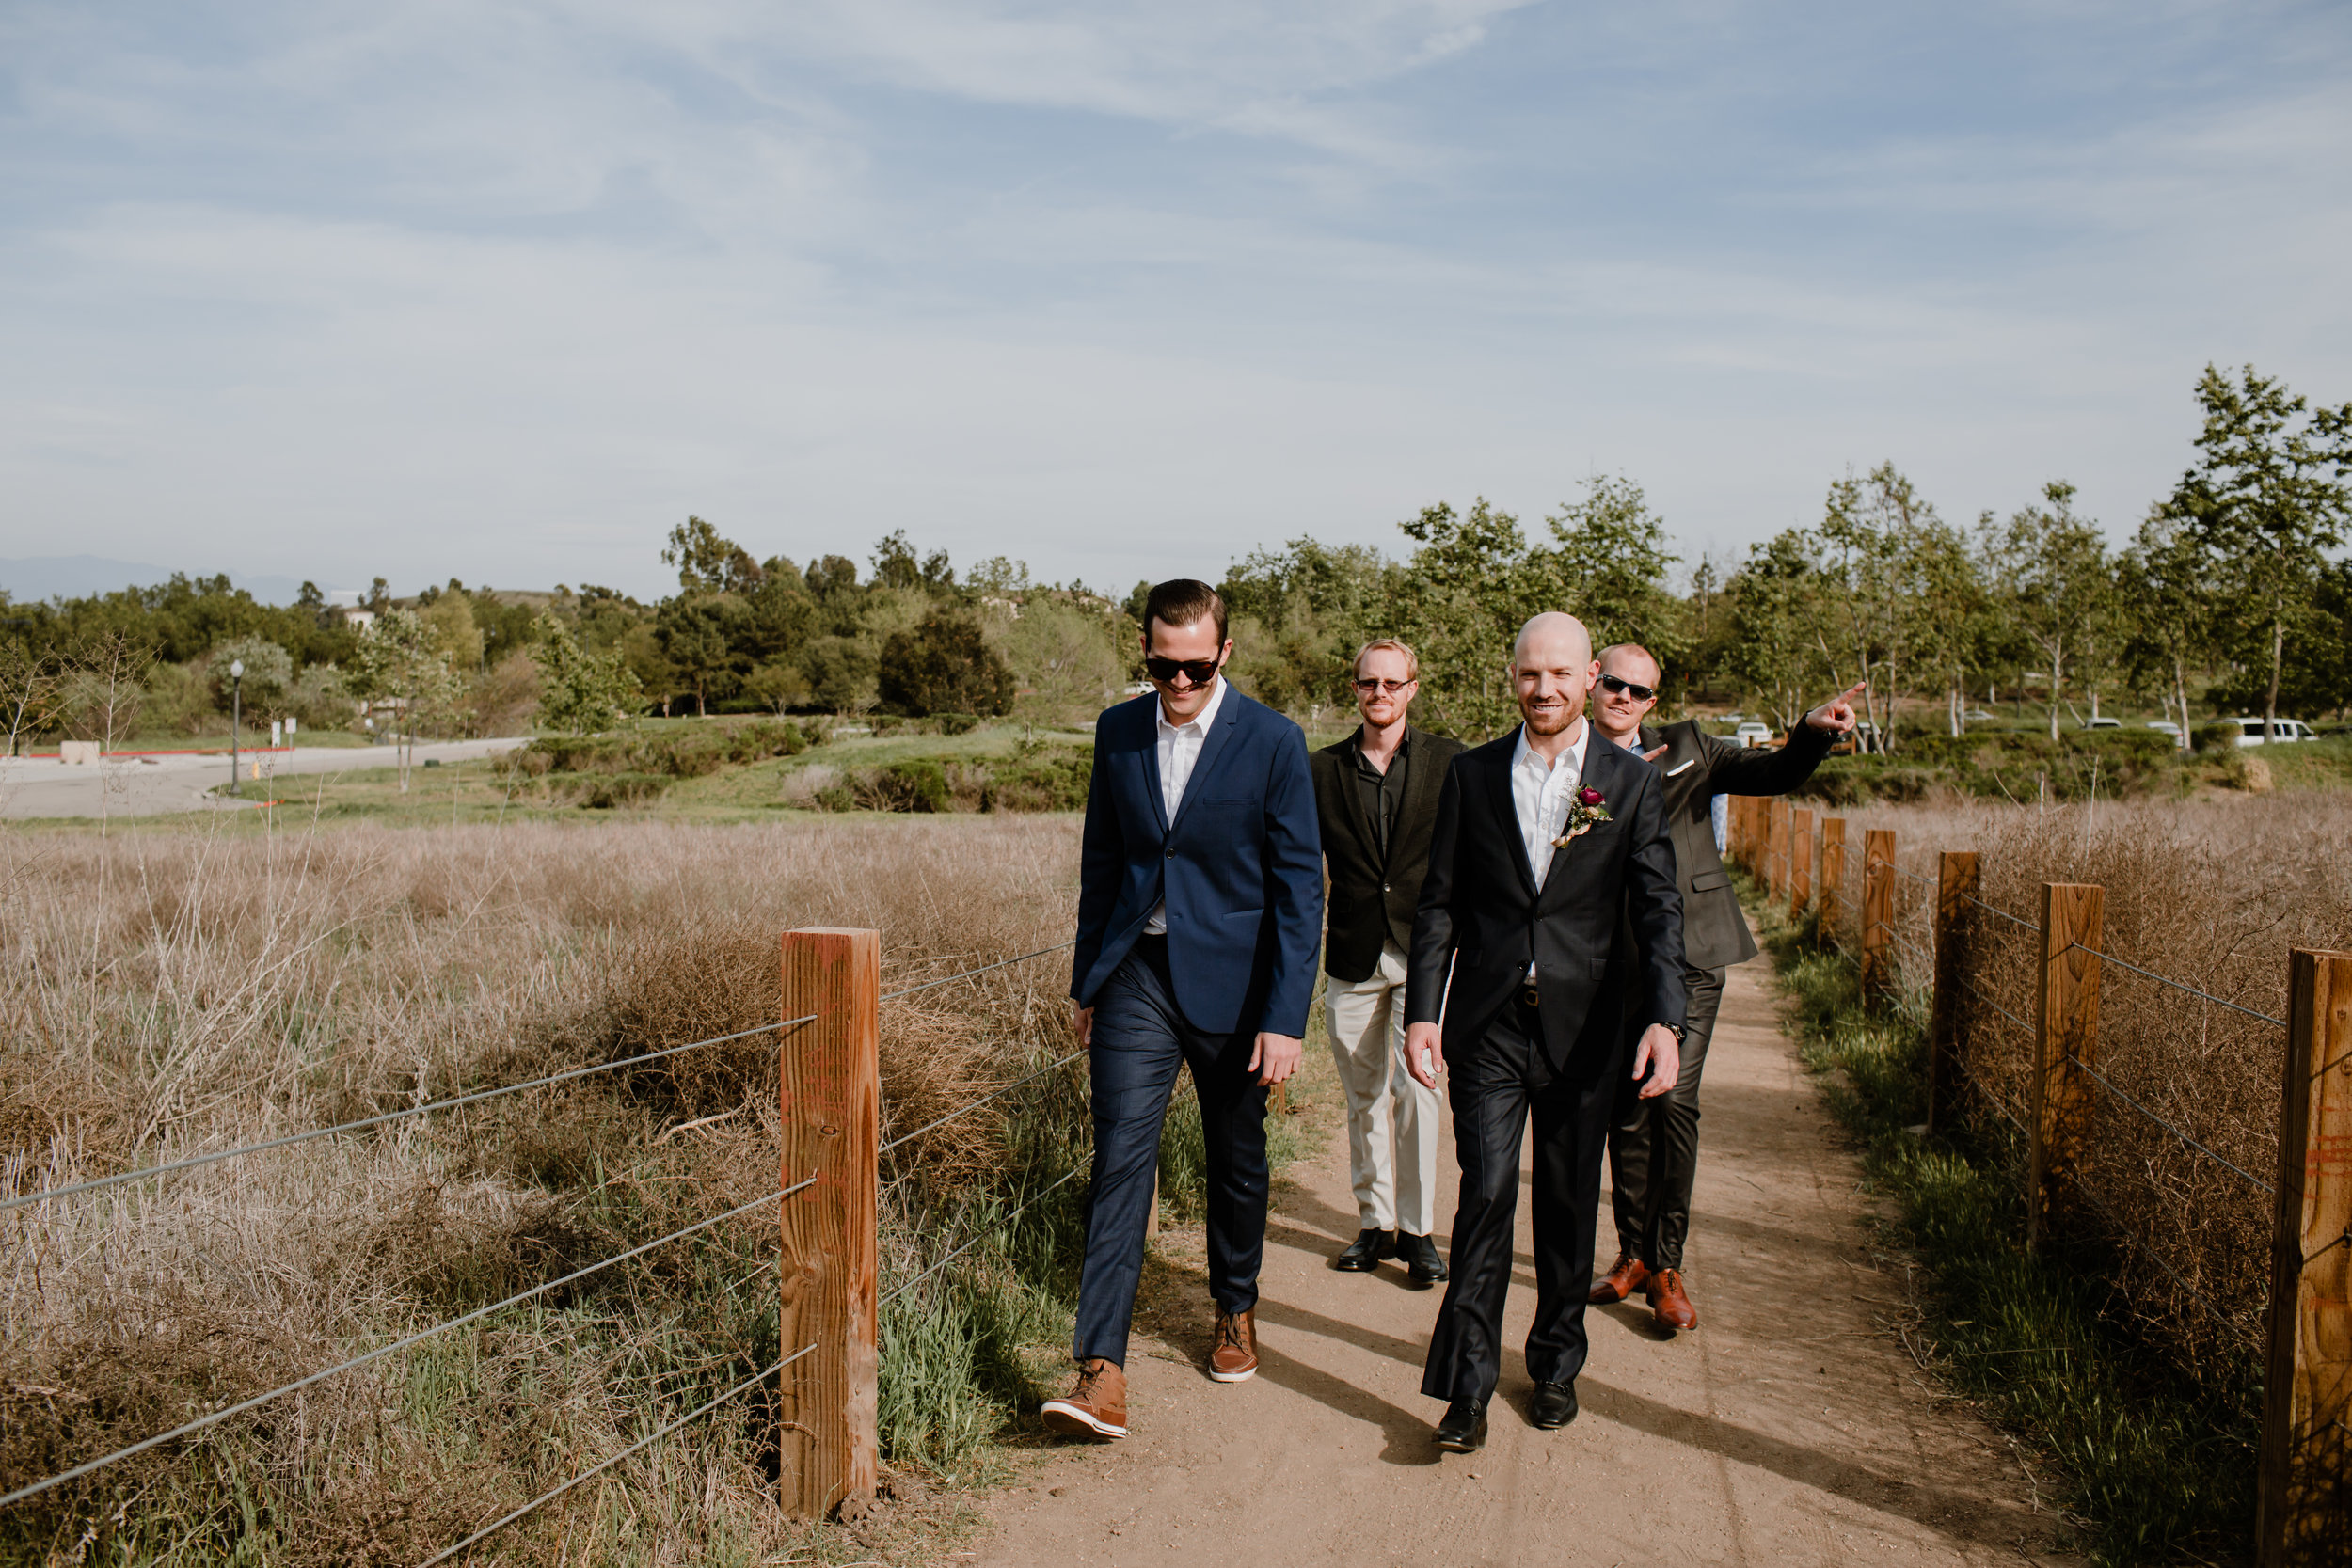 Caydin and Garrett Intimate wedding in Costa Mesa Orange County - Eve Rox Photography-132.jpg